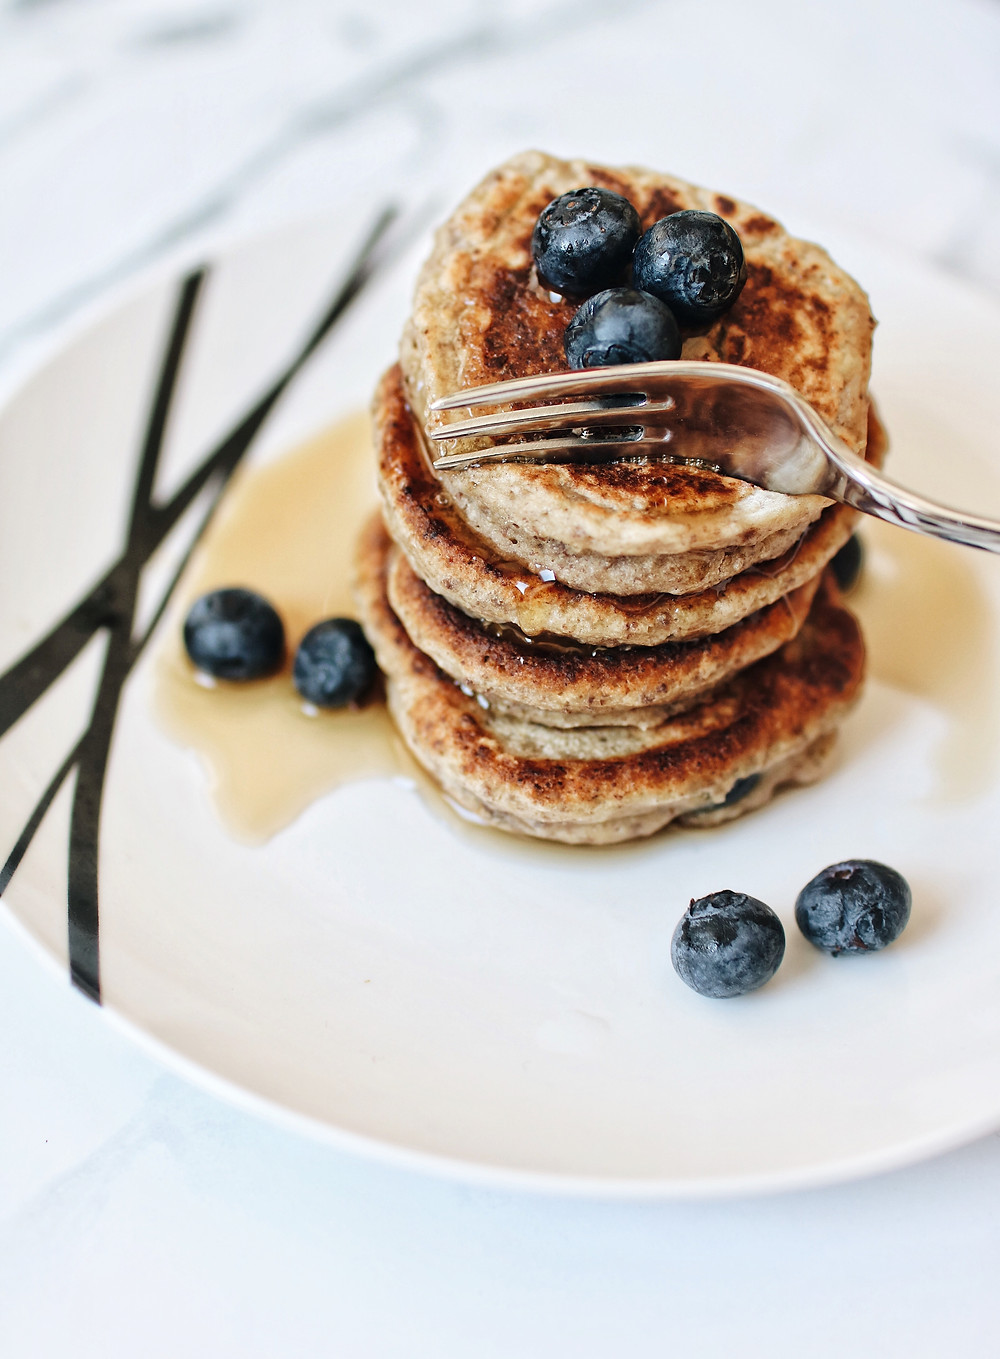 Gluten free blueberry oatmeal pancakes stacked on a plate, with fresh blueberries and maple syrup.